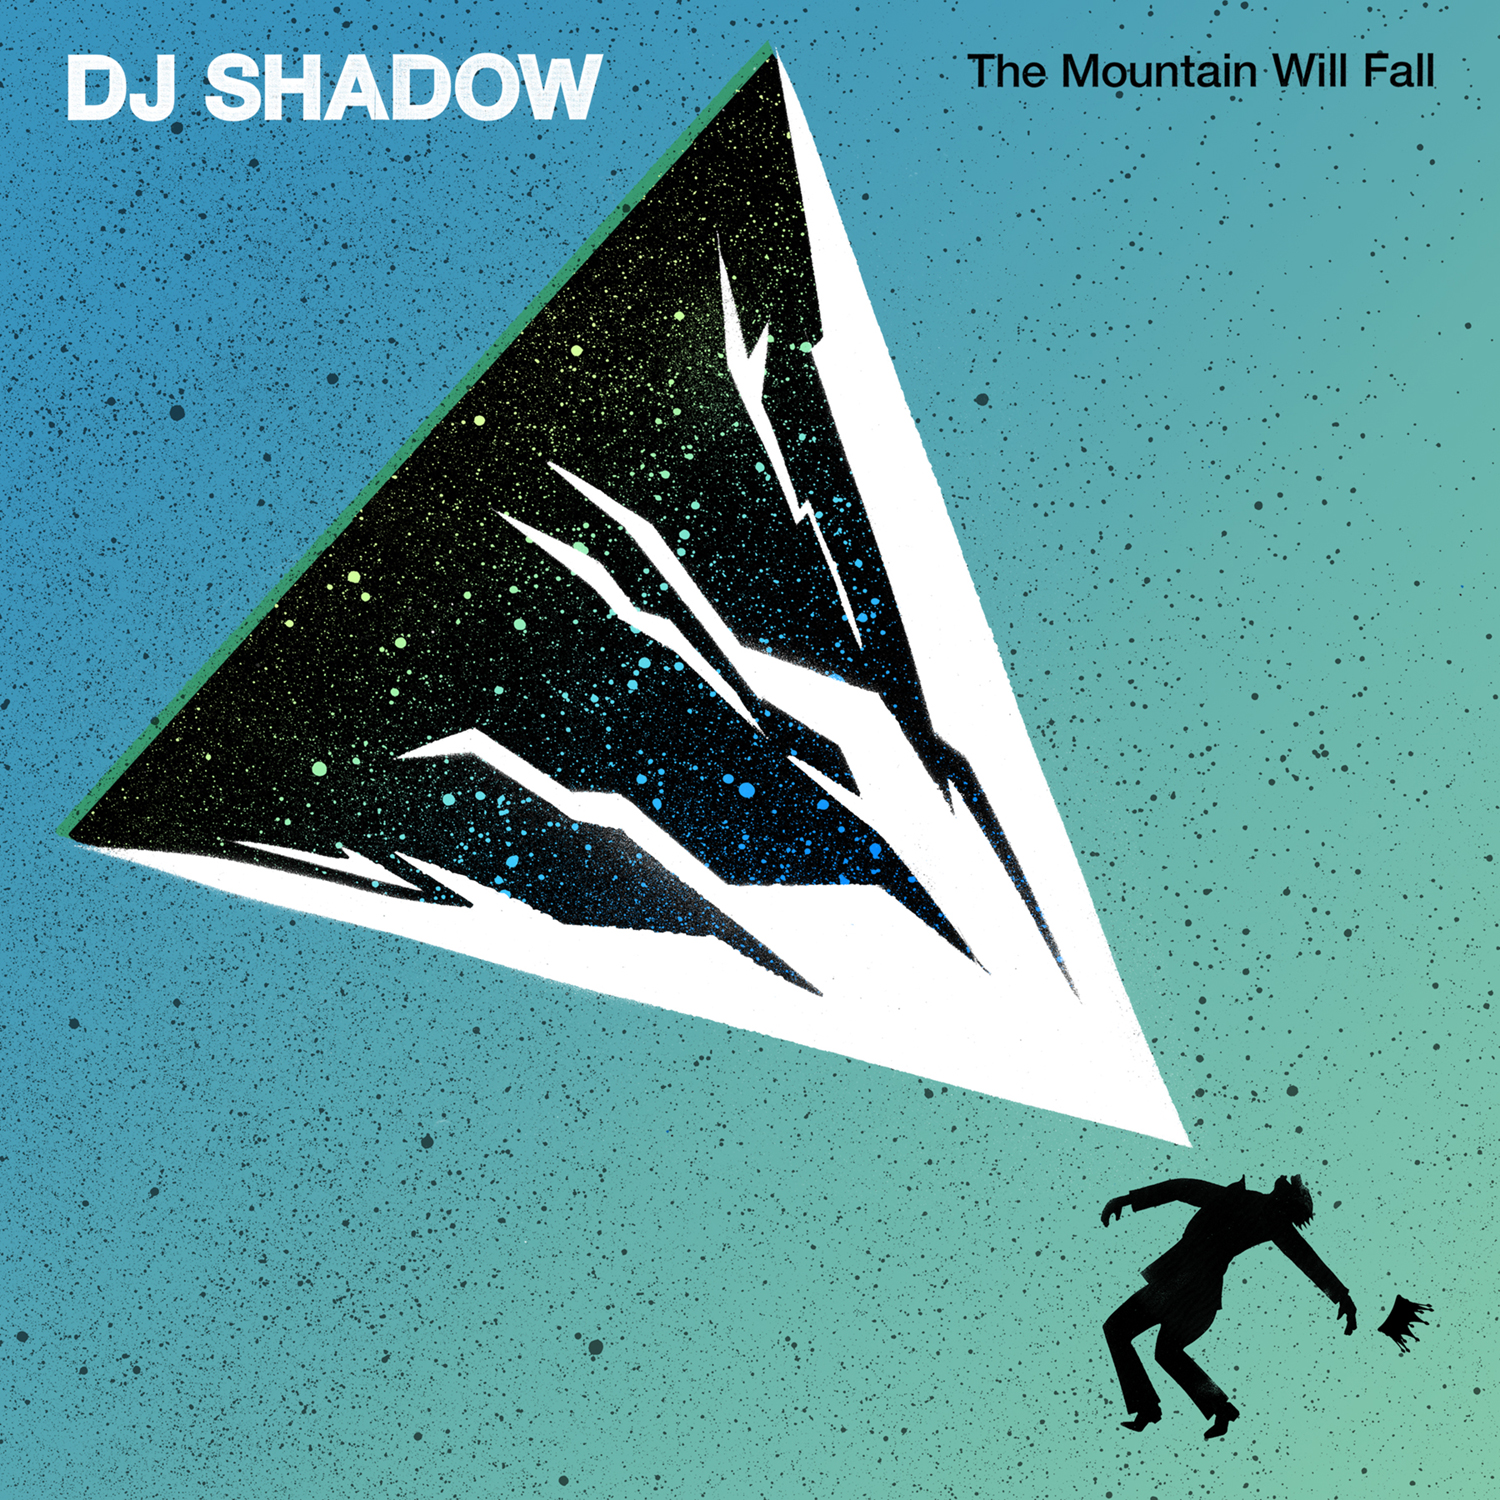 DJ Shadow cover